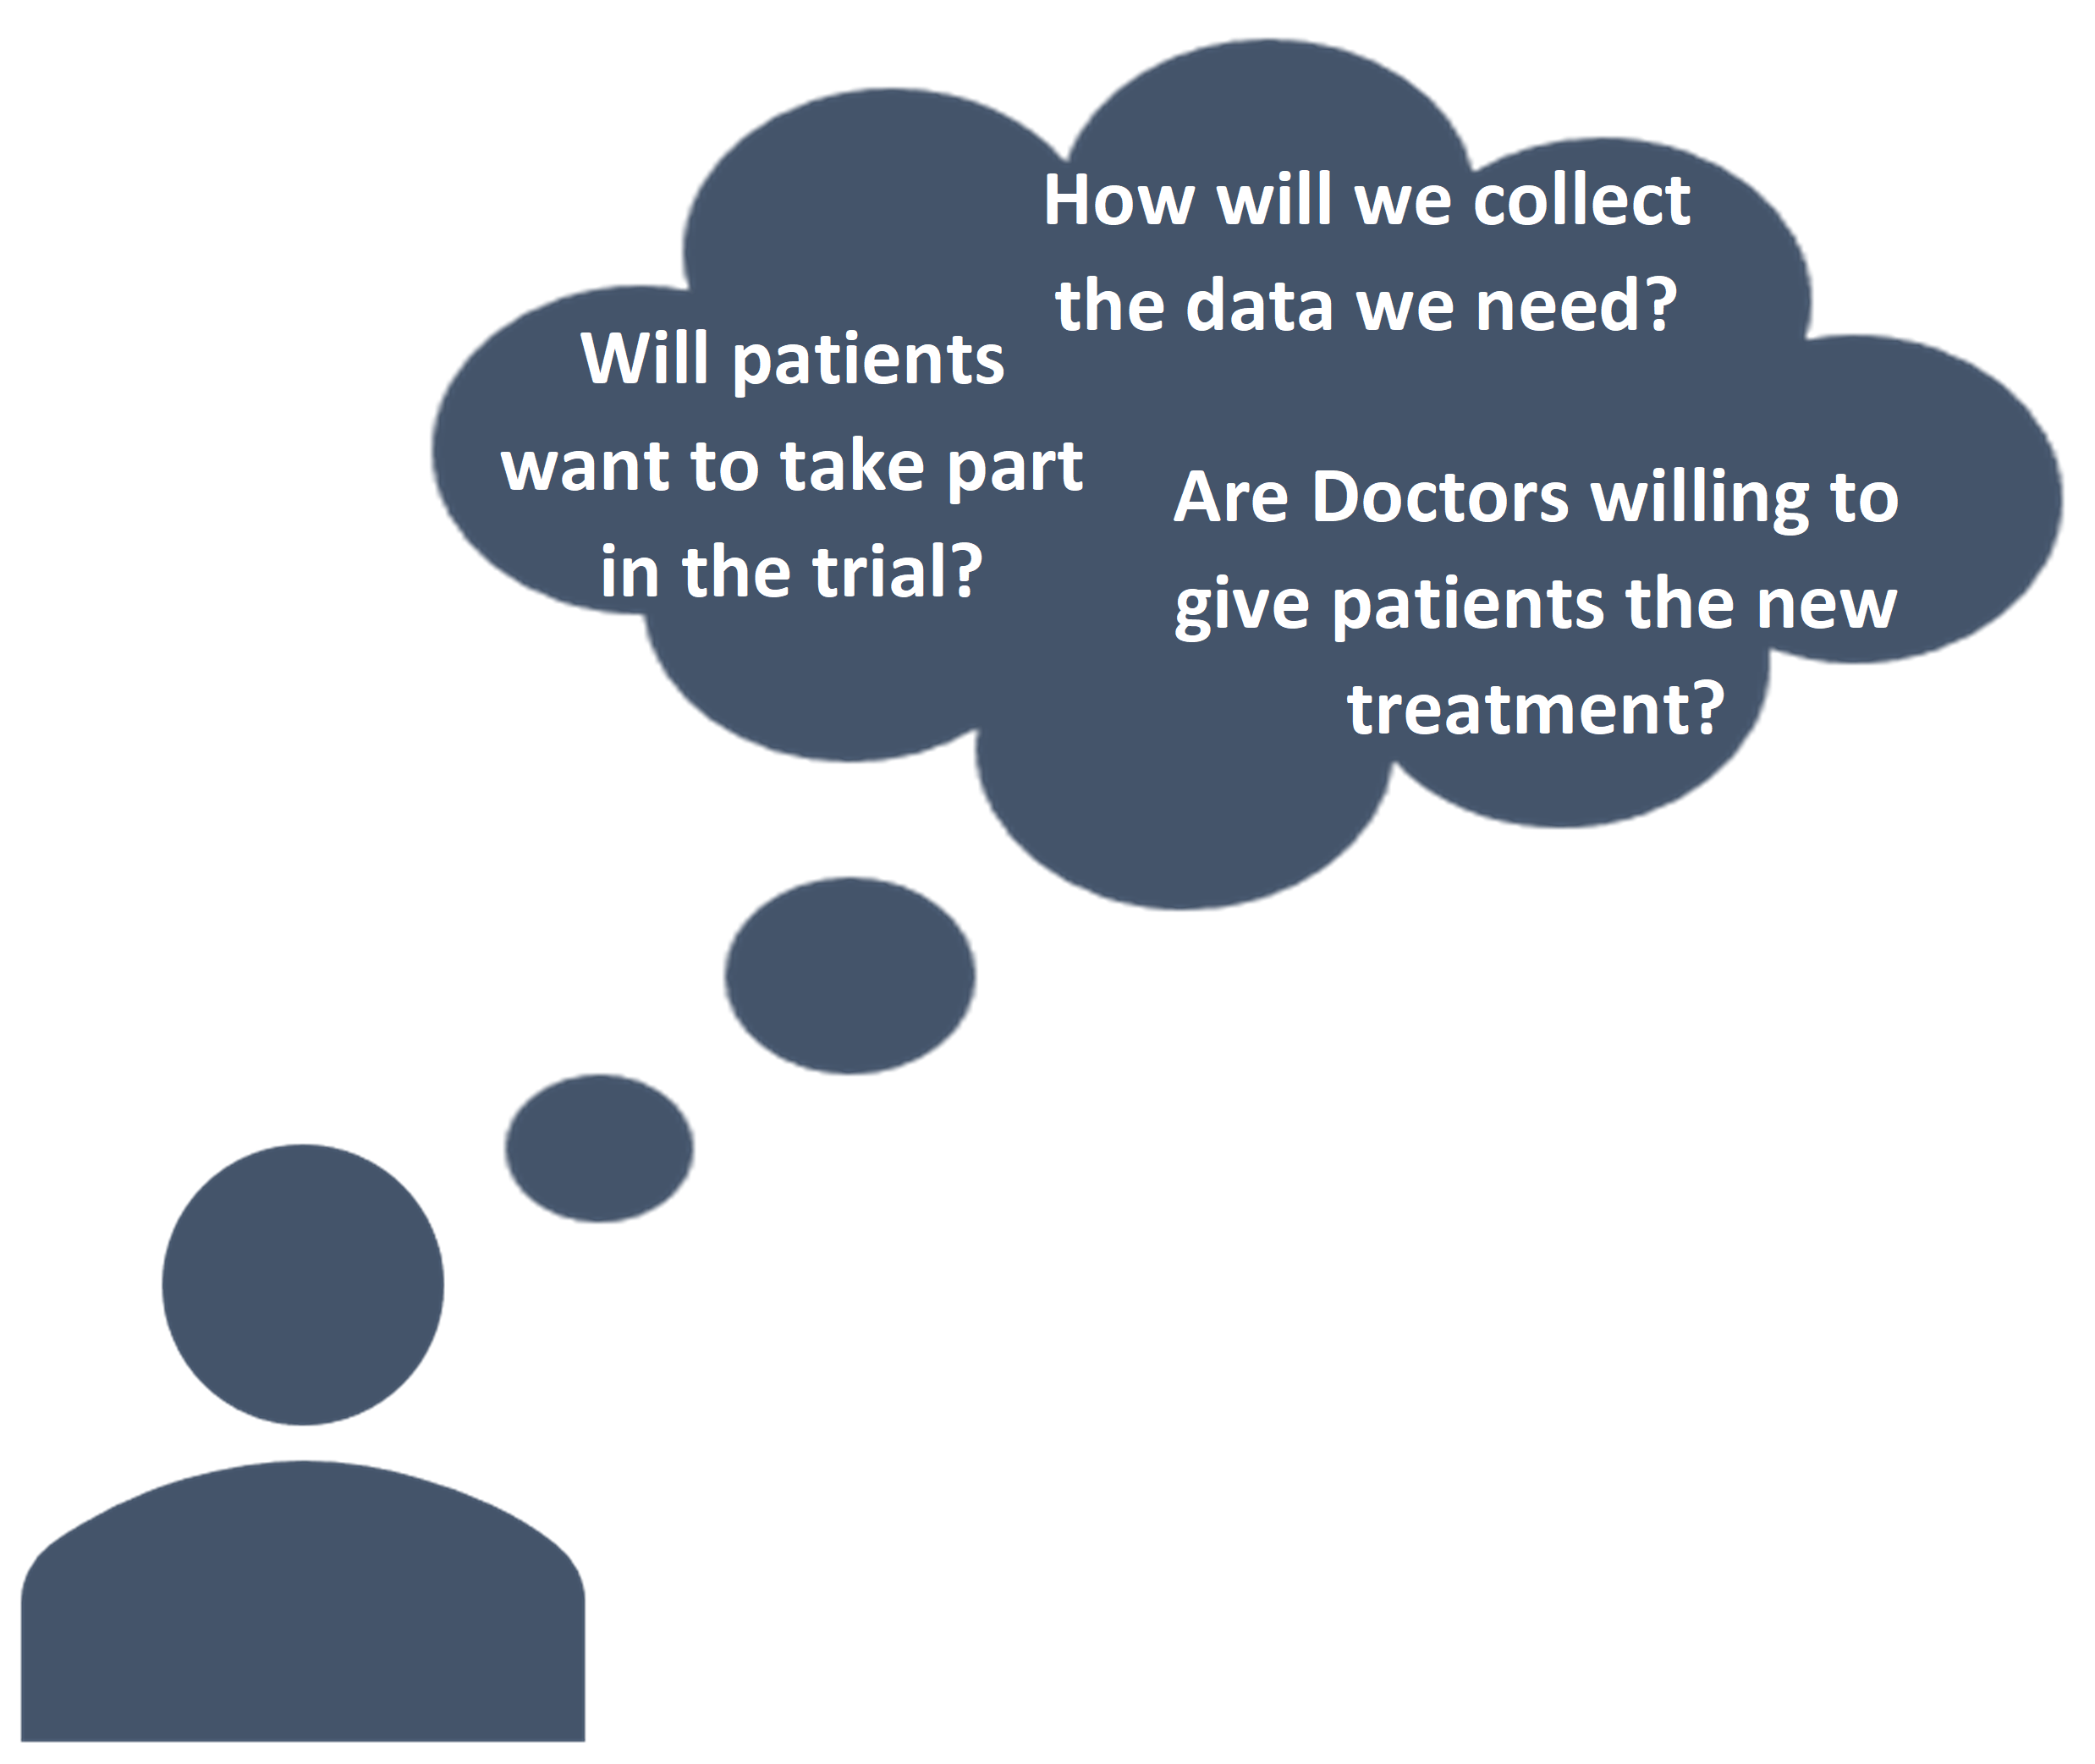 Speech bubble with questions: Will patients want to take part in the trial? How will we collect the data we need? Are Doctors willing to give patients the treatment?